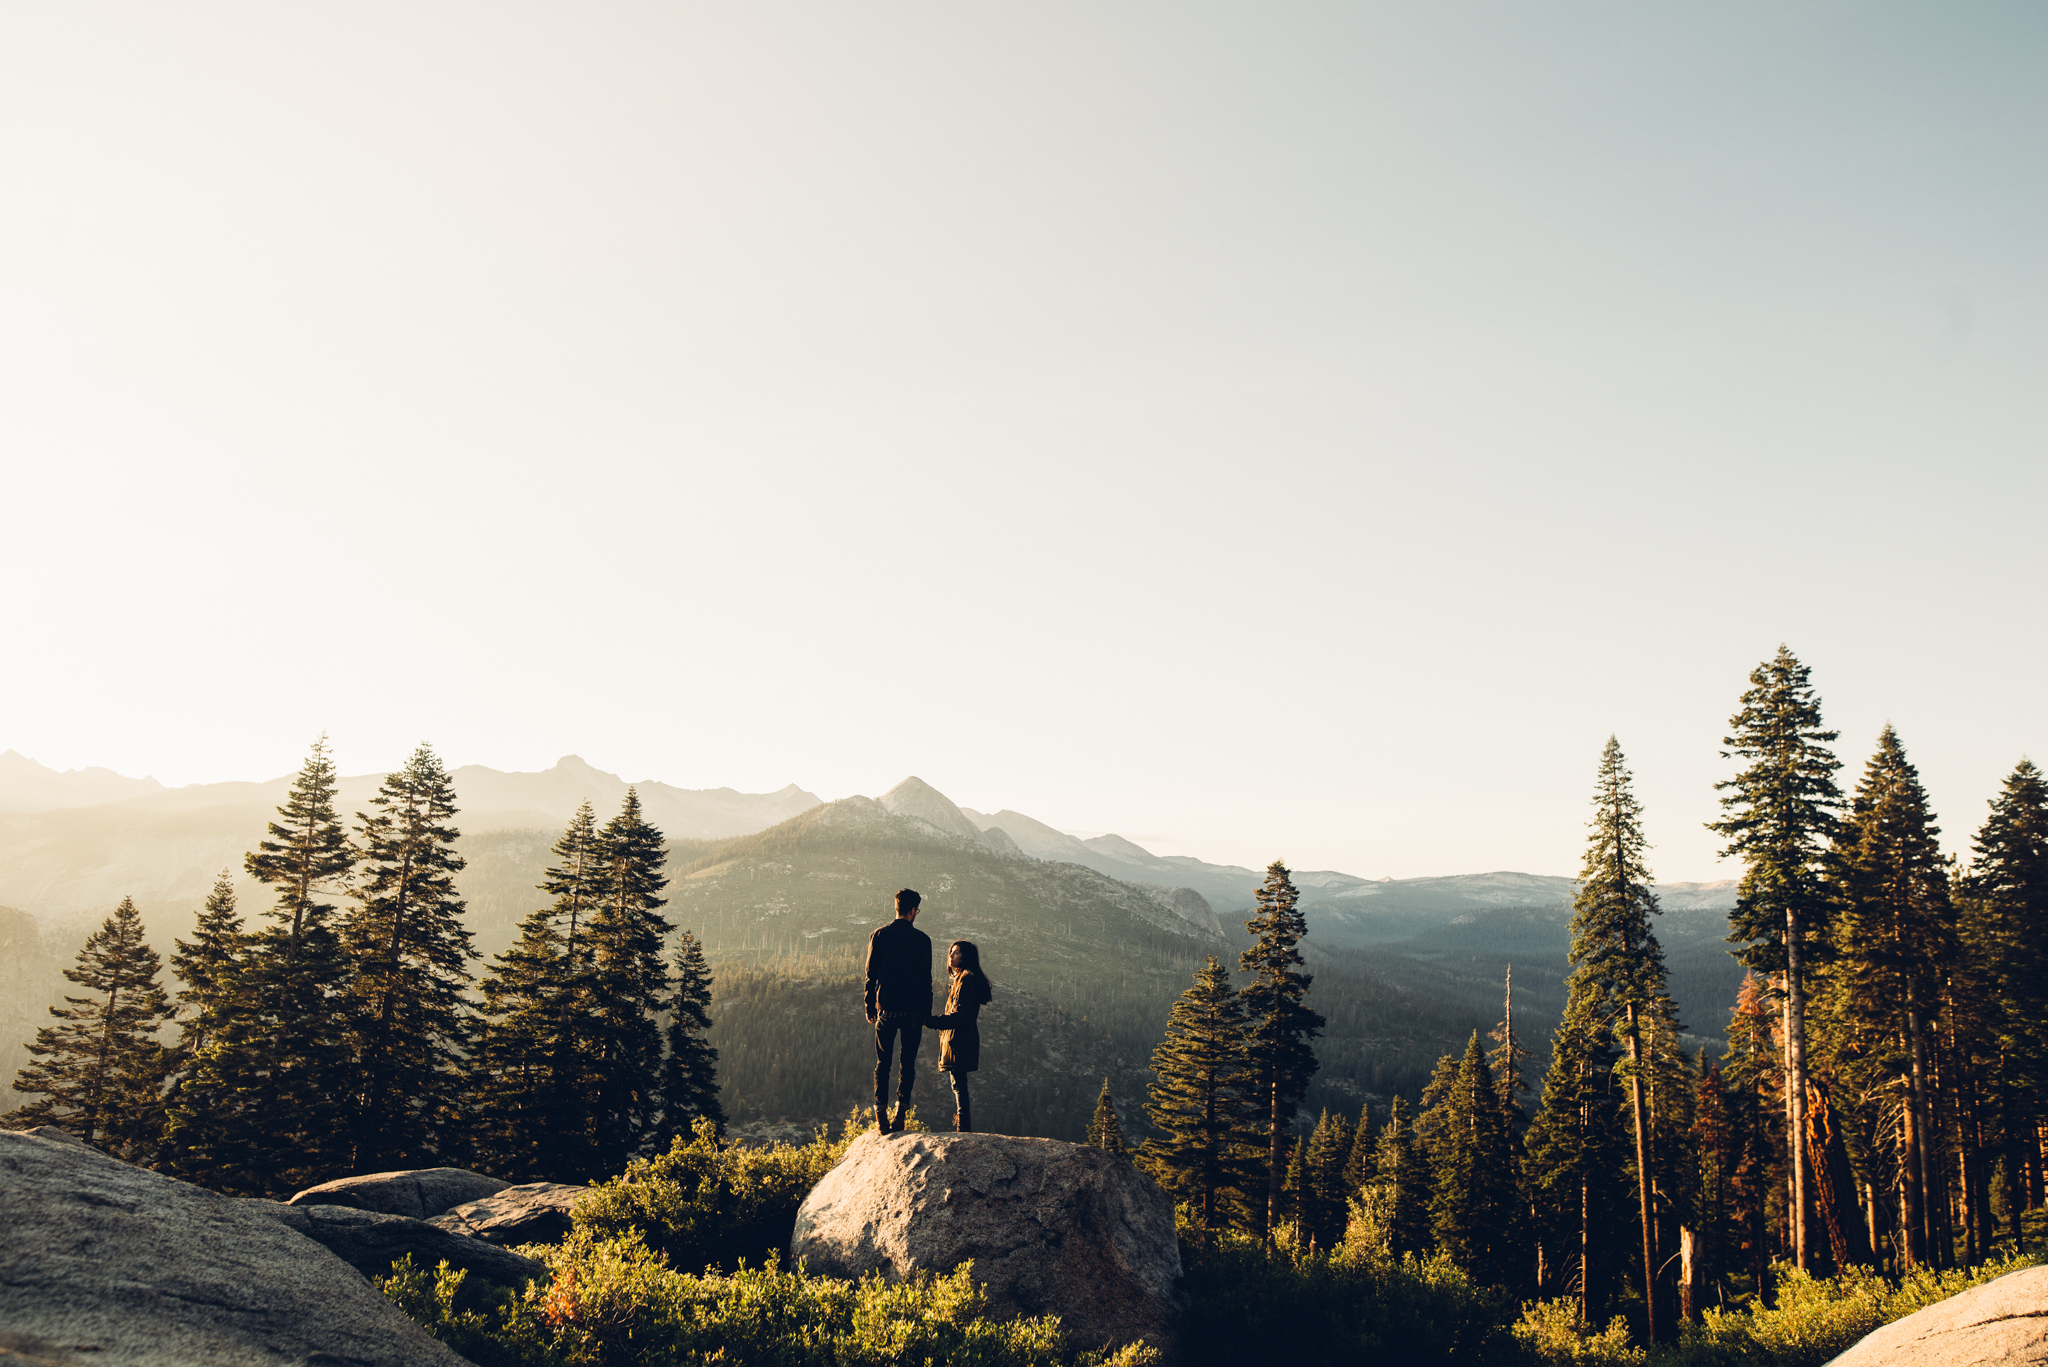 ©Isaiah & Taylor Photography - Los Angeles Destination Wedding Photographer - Yosemite National Park Hiking Adventure Engagement - Glacier Point Sunrise-013.jpg